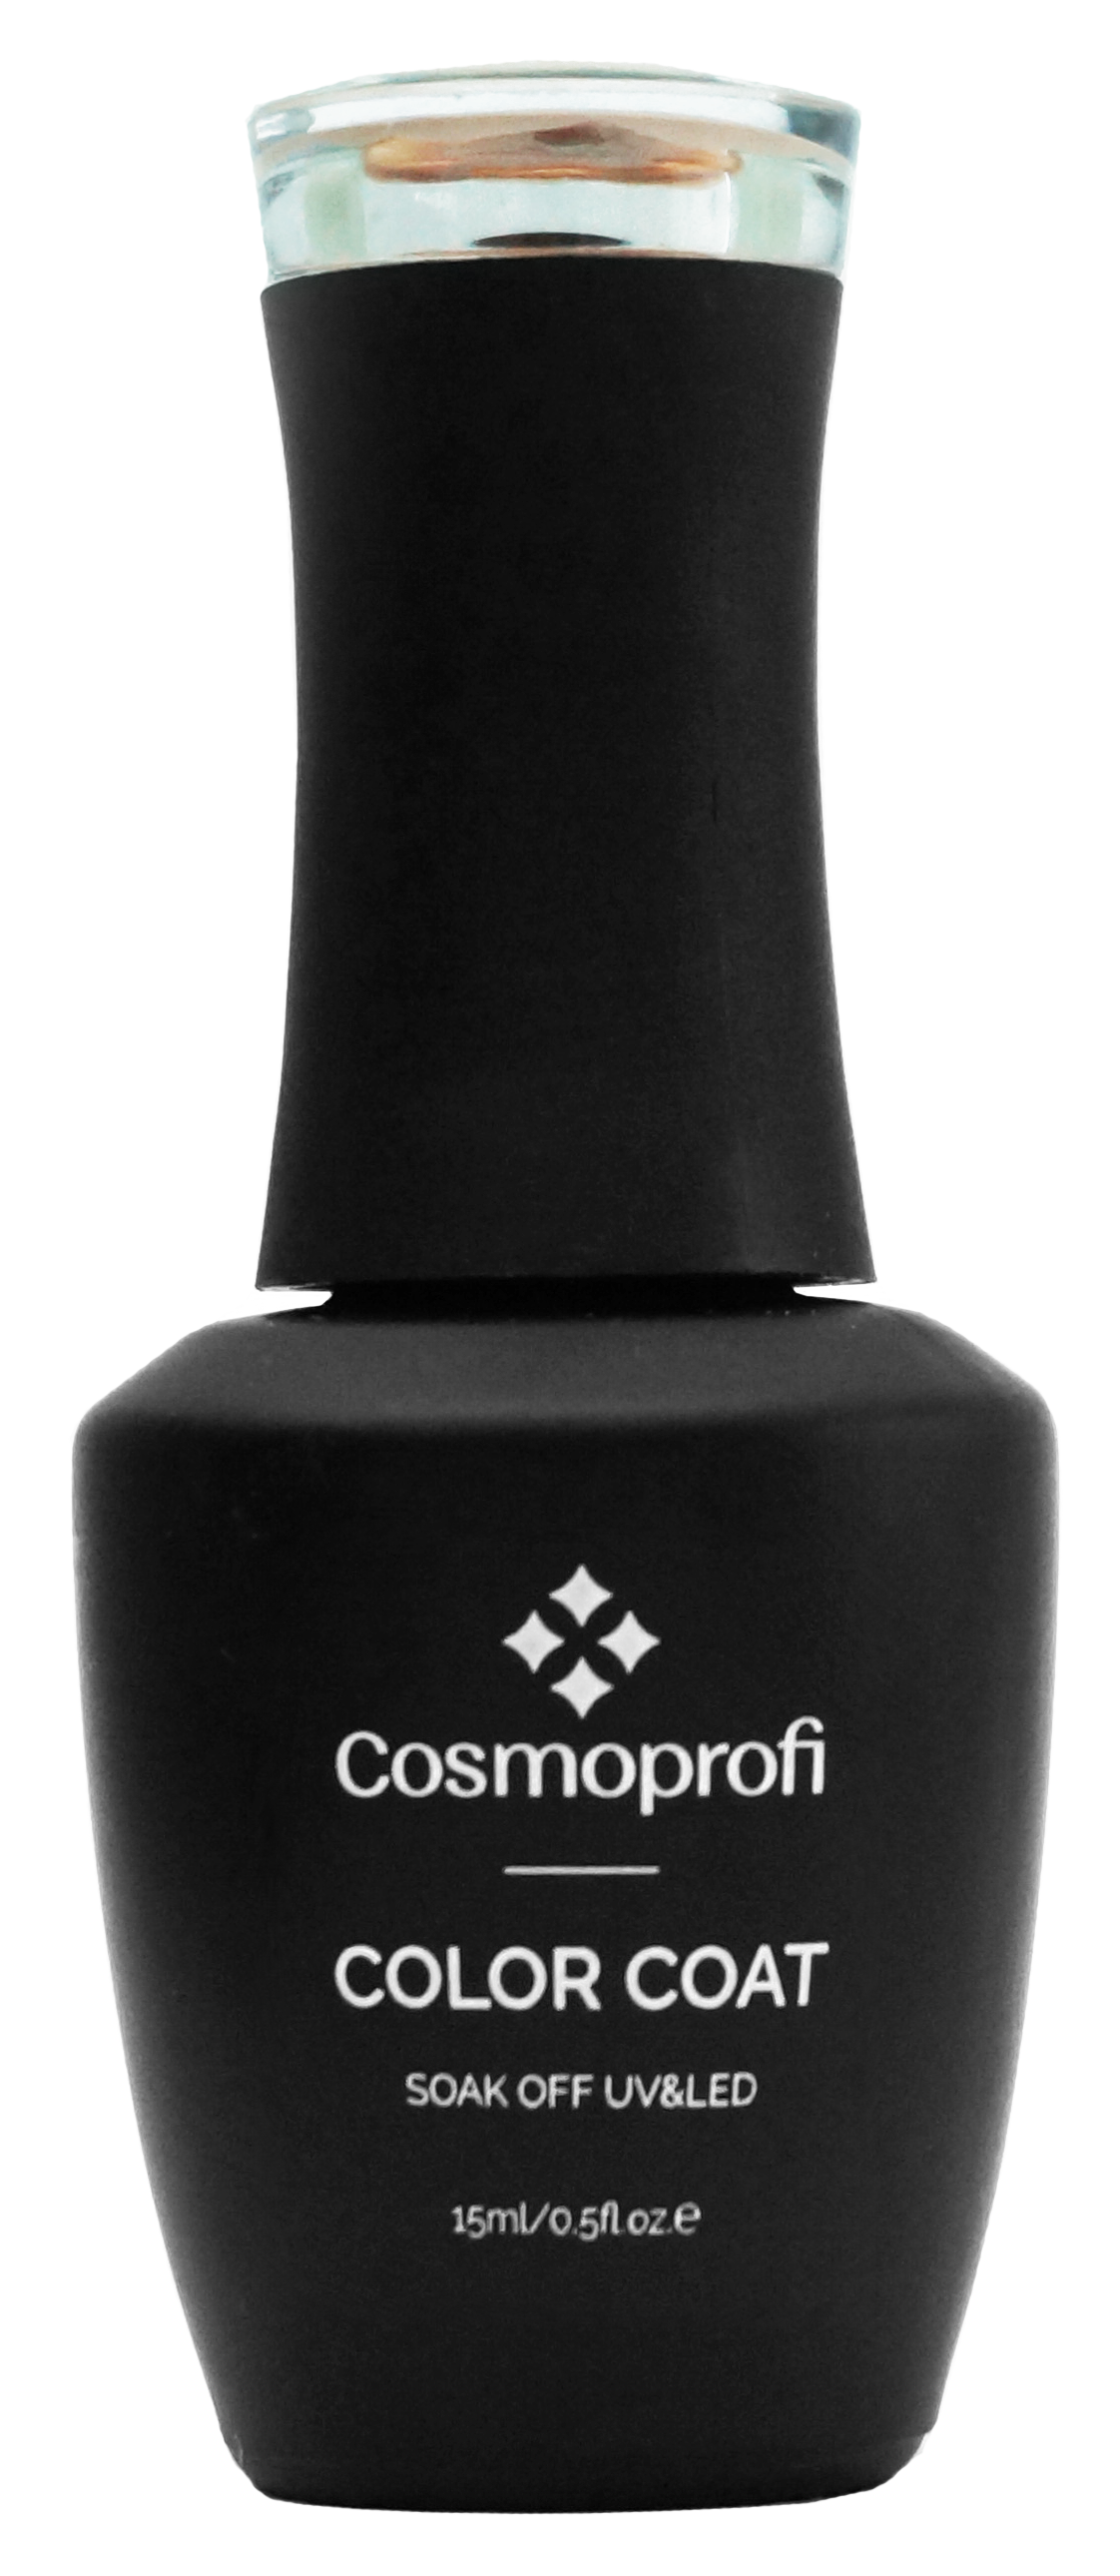 Гель-лак Cosmoprofi, Color coat № 118, 15 мл